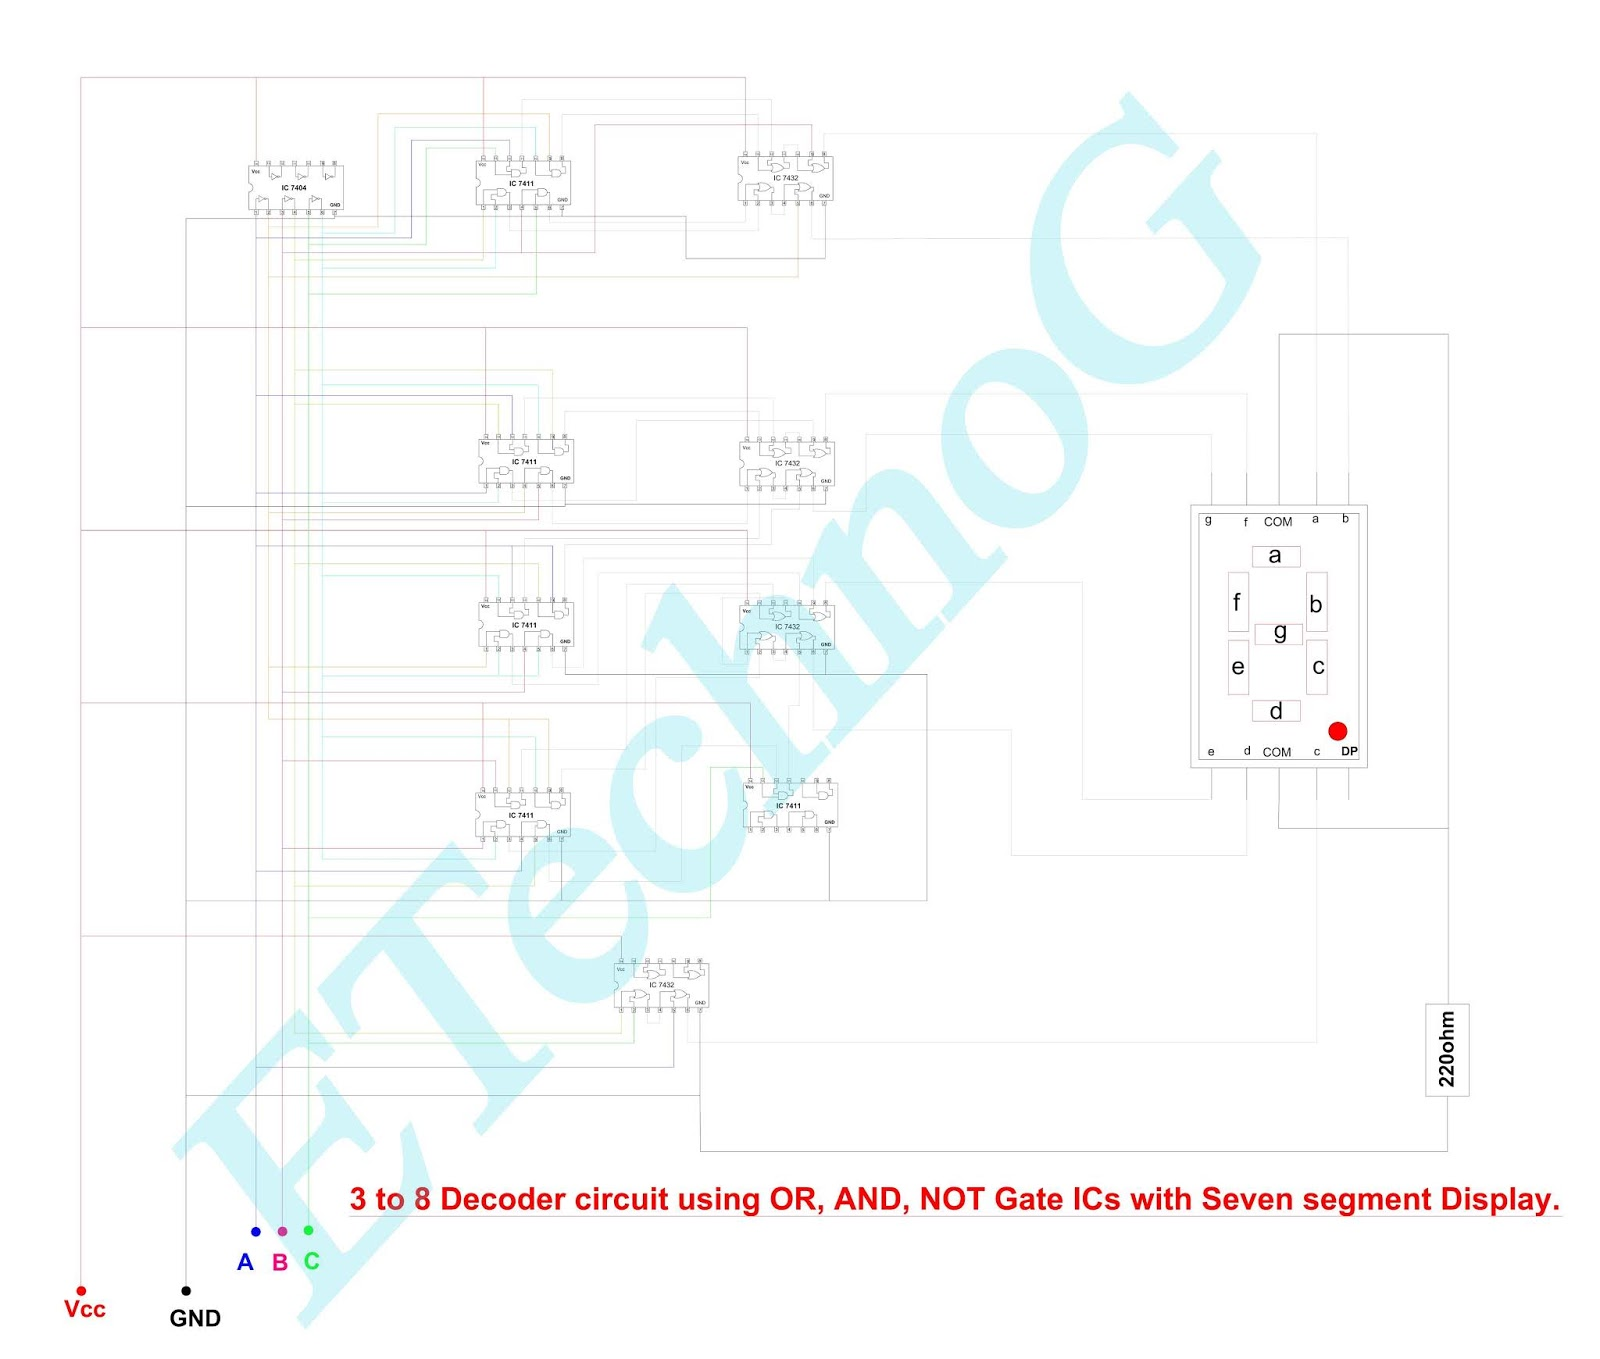 hight resolution of 3 to 8 decoder circuit diagram 3 to 8 decoder truth table circuit design